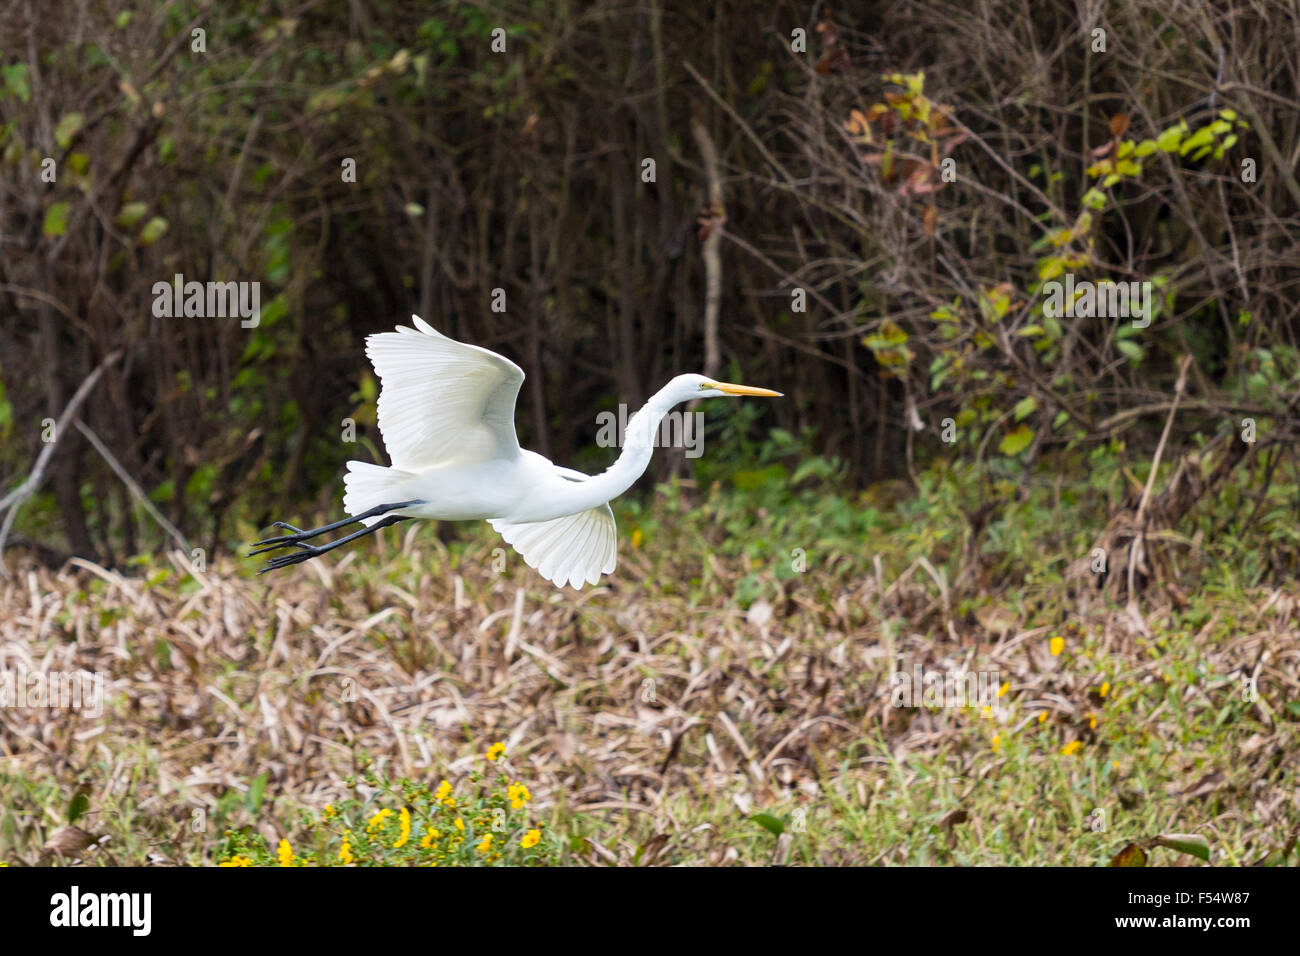 Great Egret bird, Ardea alba, soaring in flight in Atchafalaya Swamp National Wildlife Reserve, Louisiana USA - Stock Image